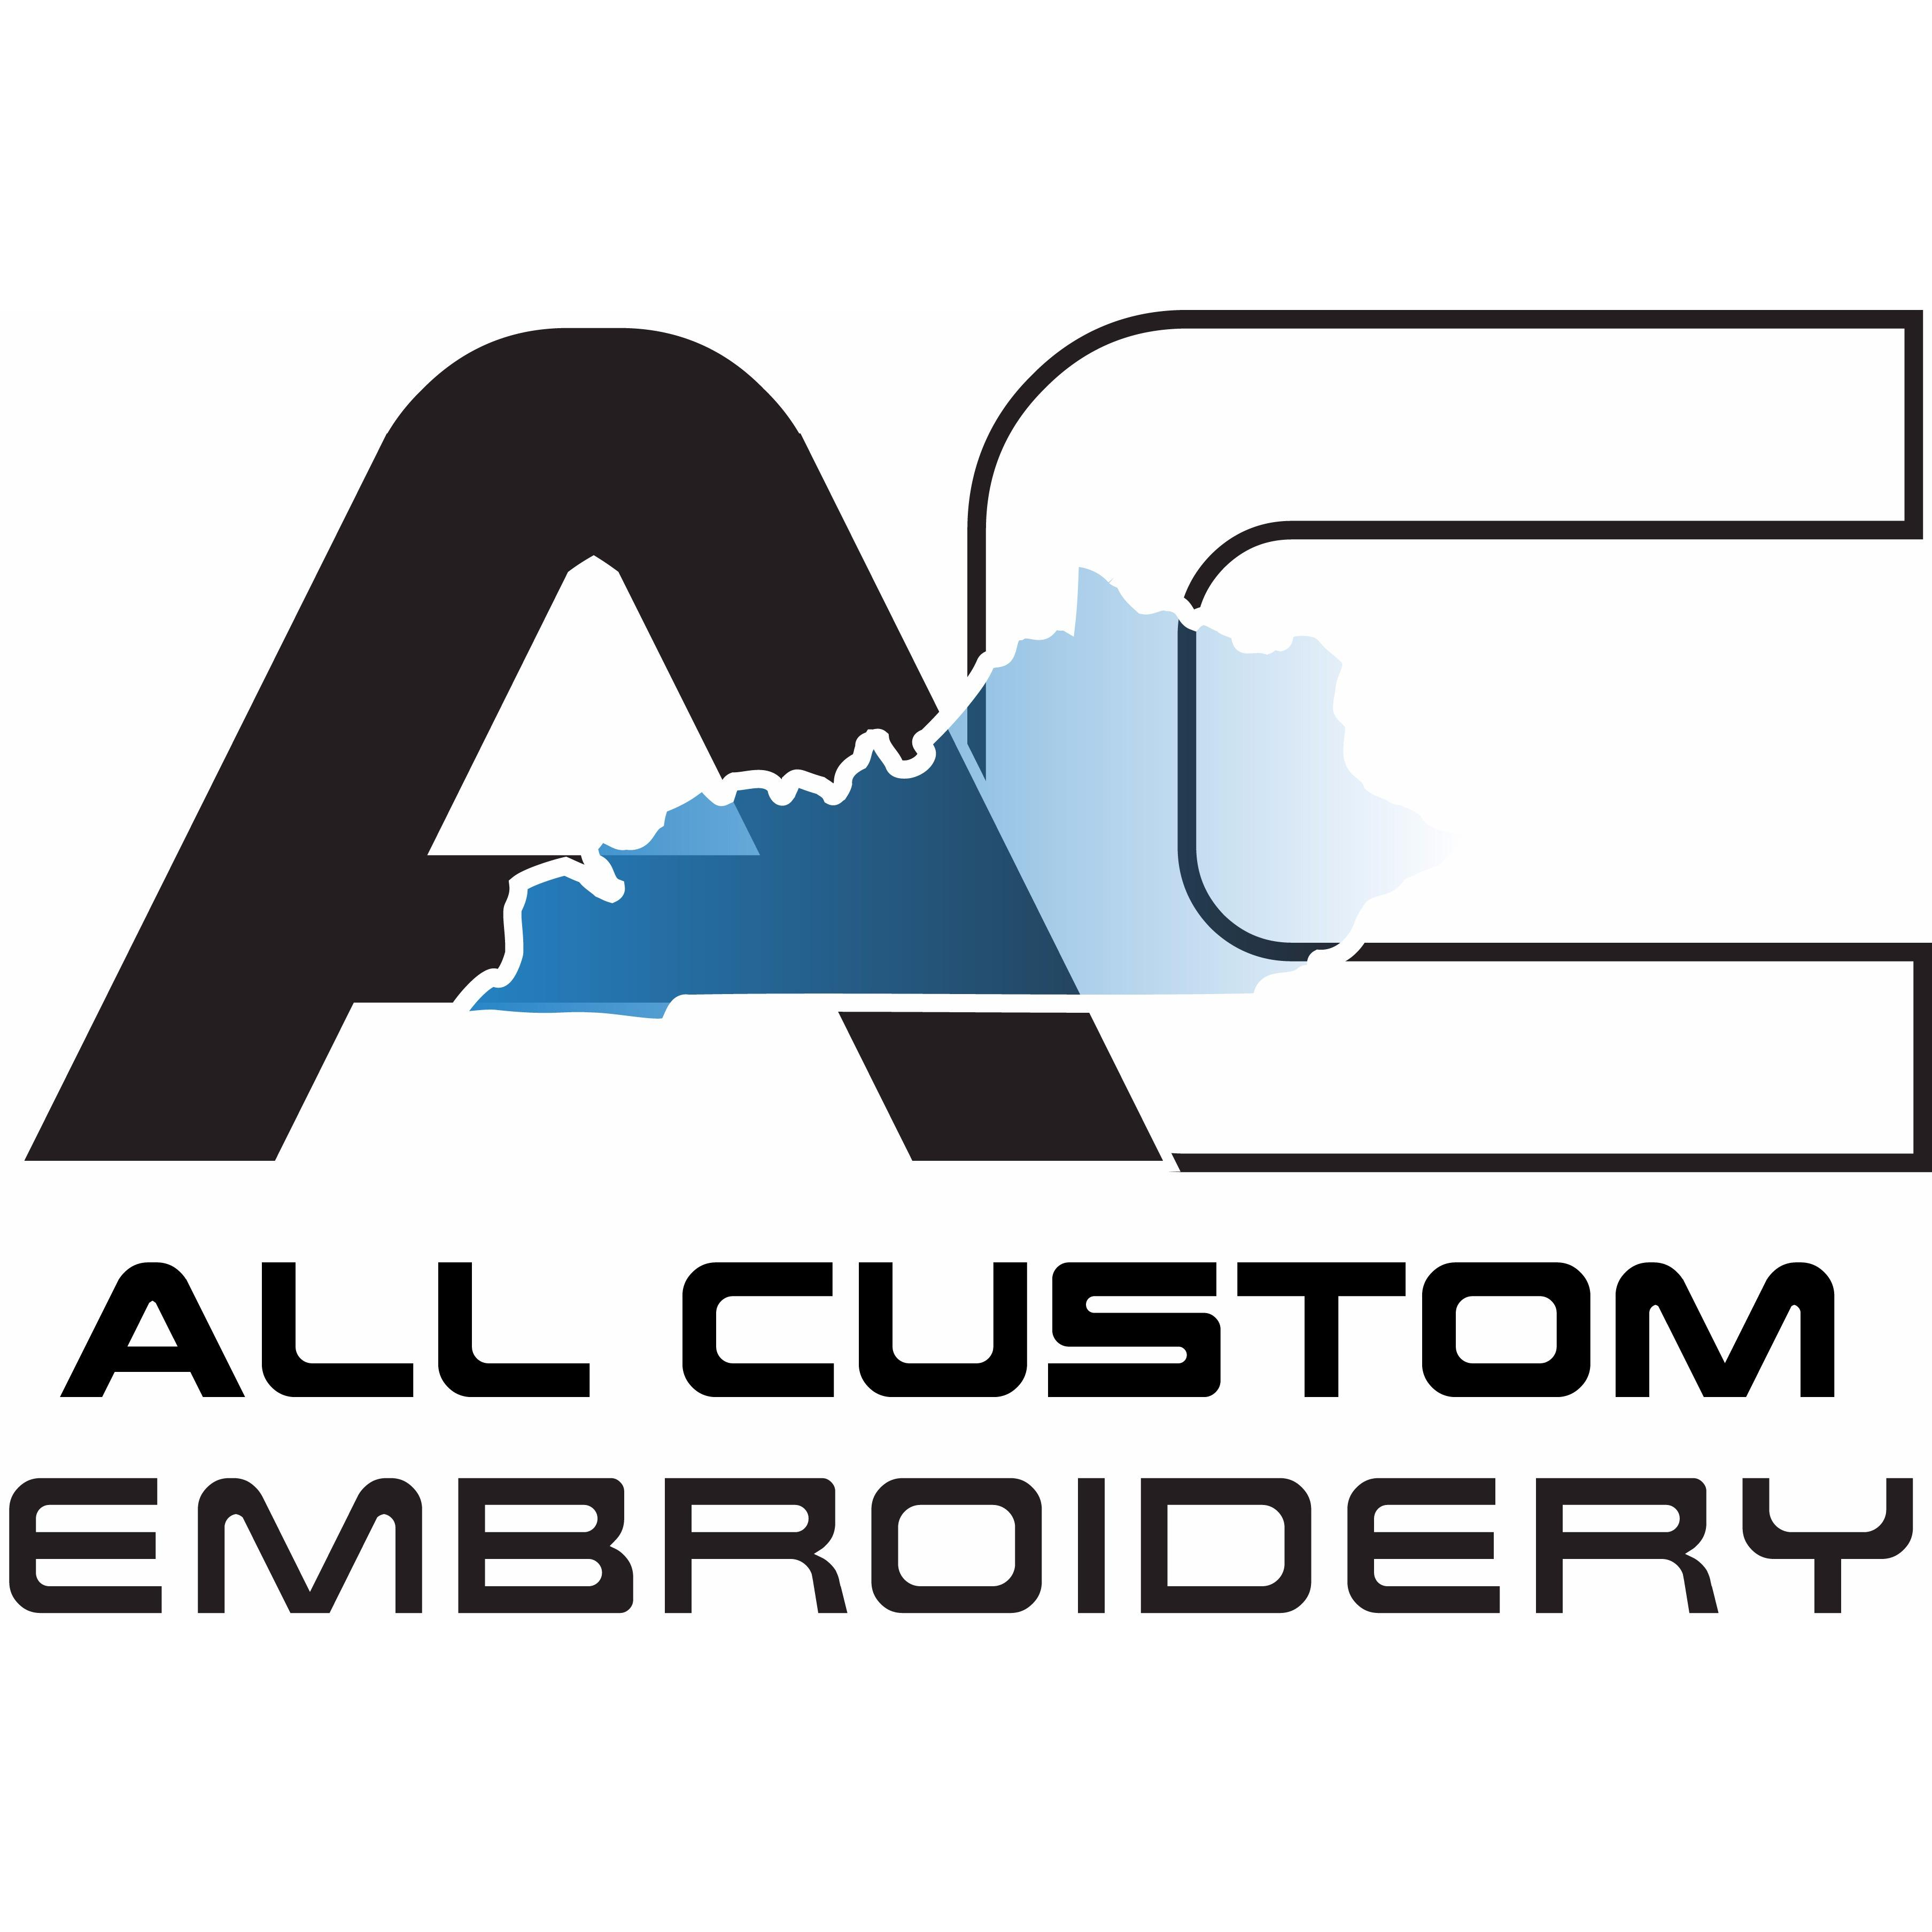 All Custom Embroidery - Nicholasville, KY - Apparel Stores